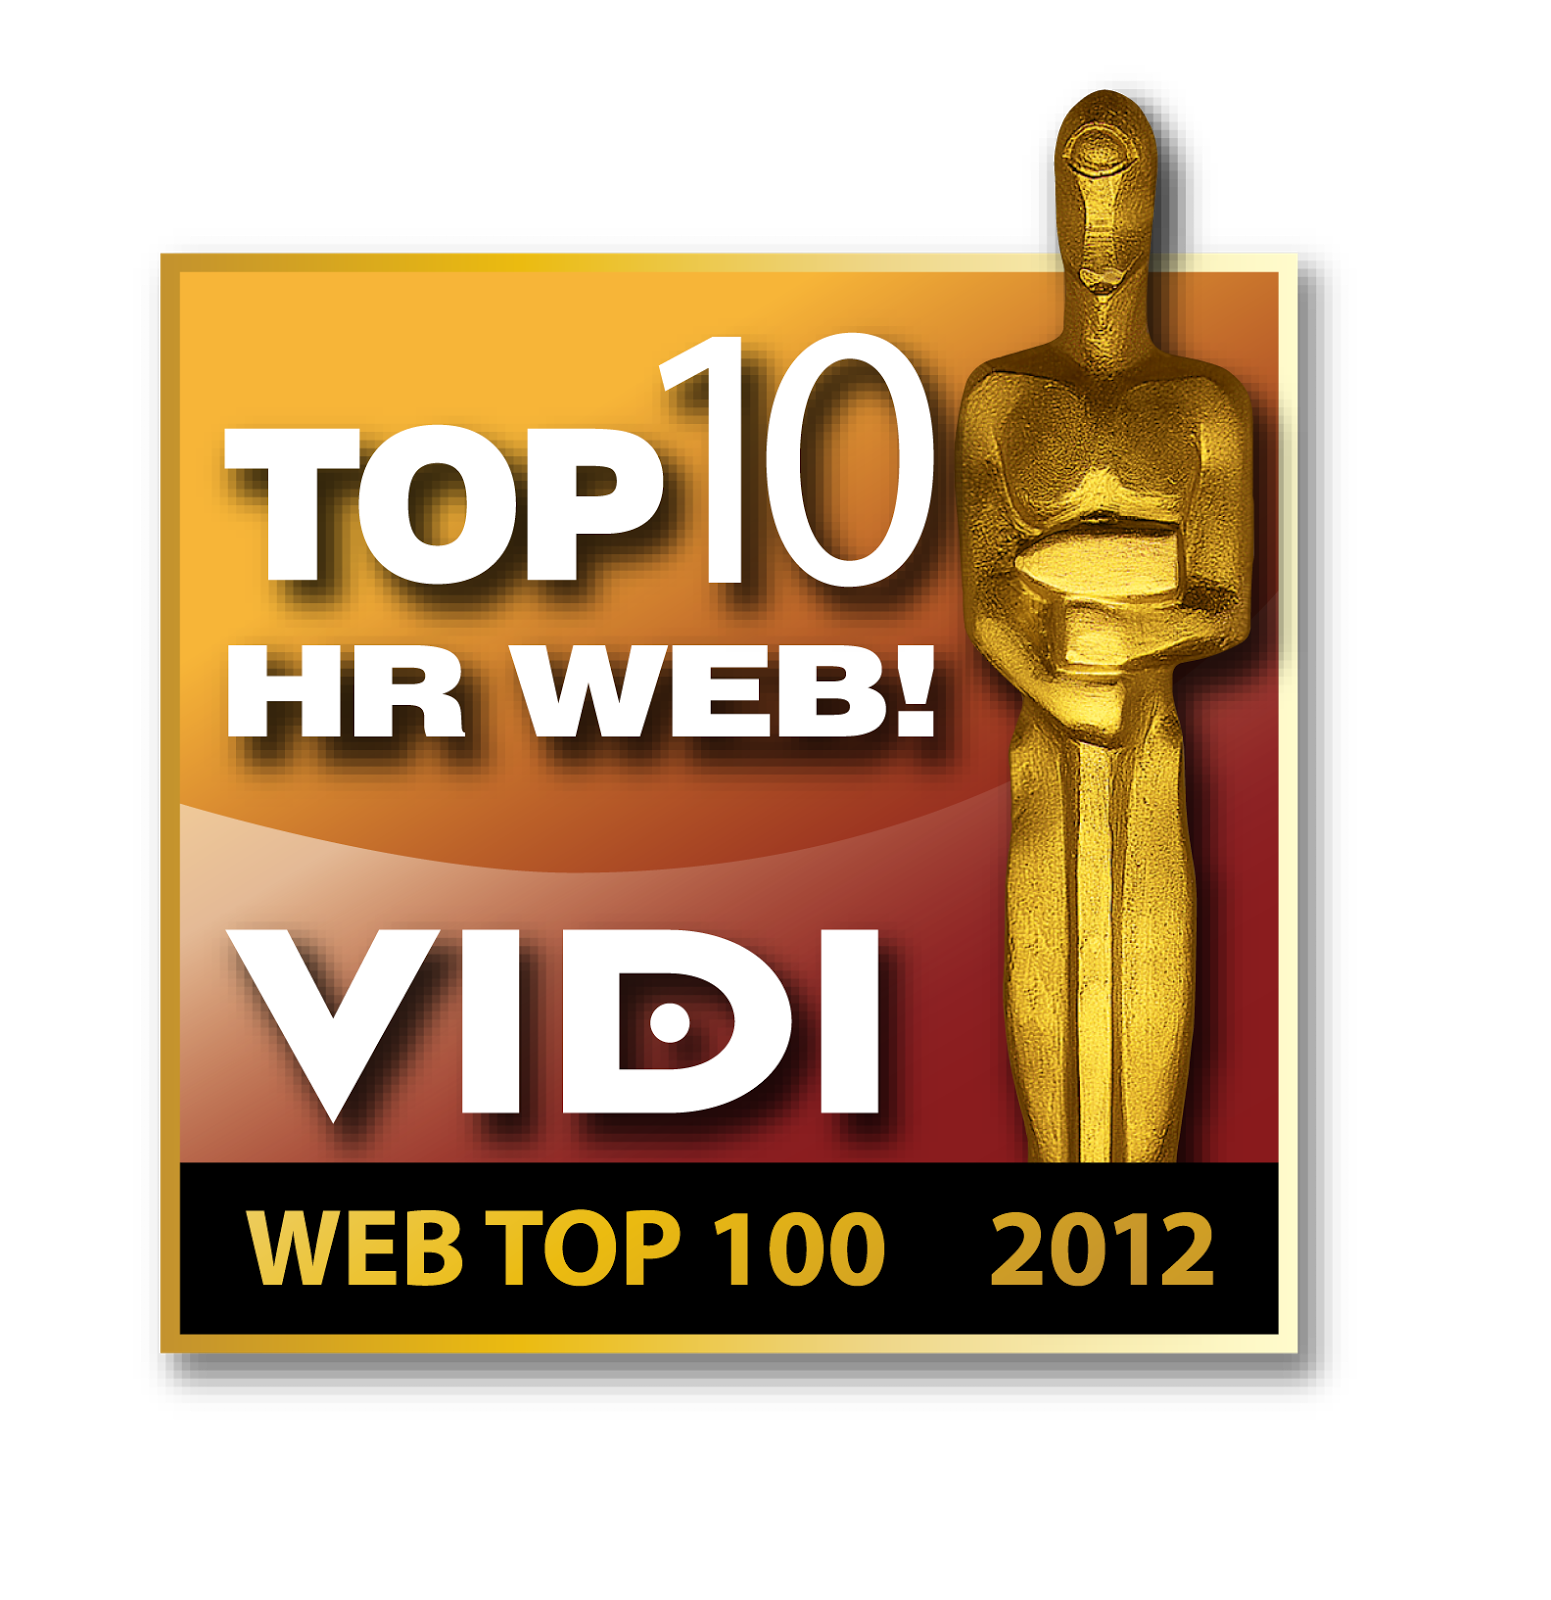 Jedan od Top 10 blogova u 2012.!